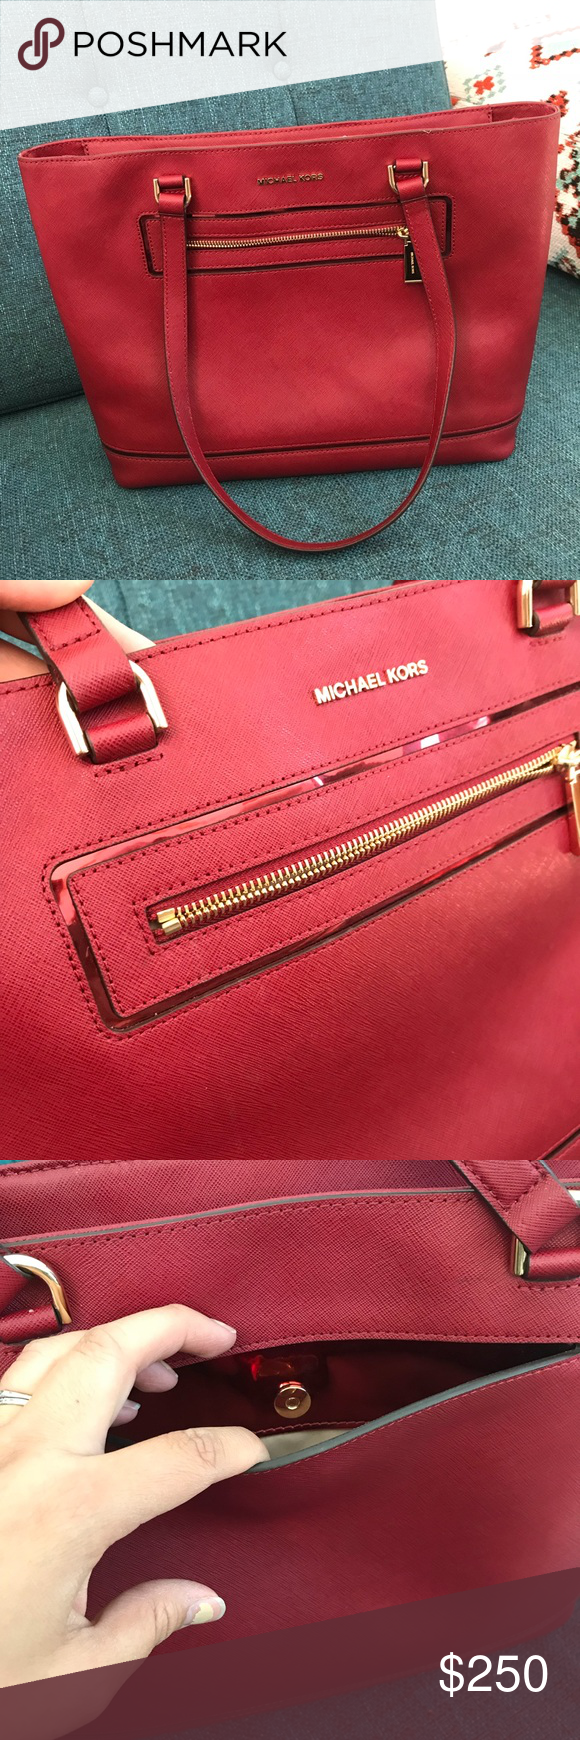 New Michael Kors Frame Out Bag NWT Cherry 🍒 red New Michael Kors Frame Out  Bag 475579c0d06b8